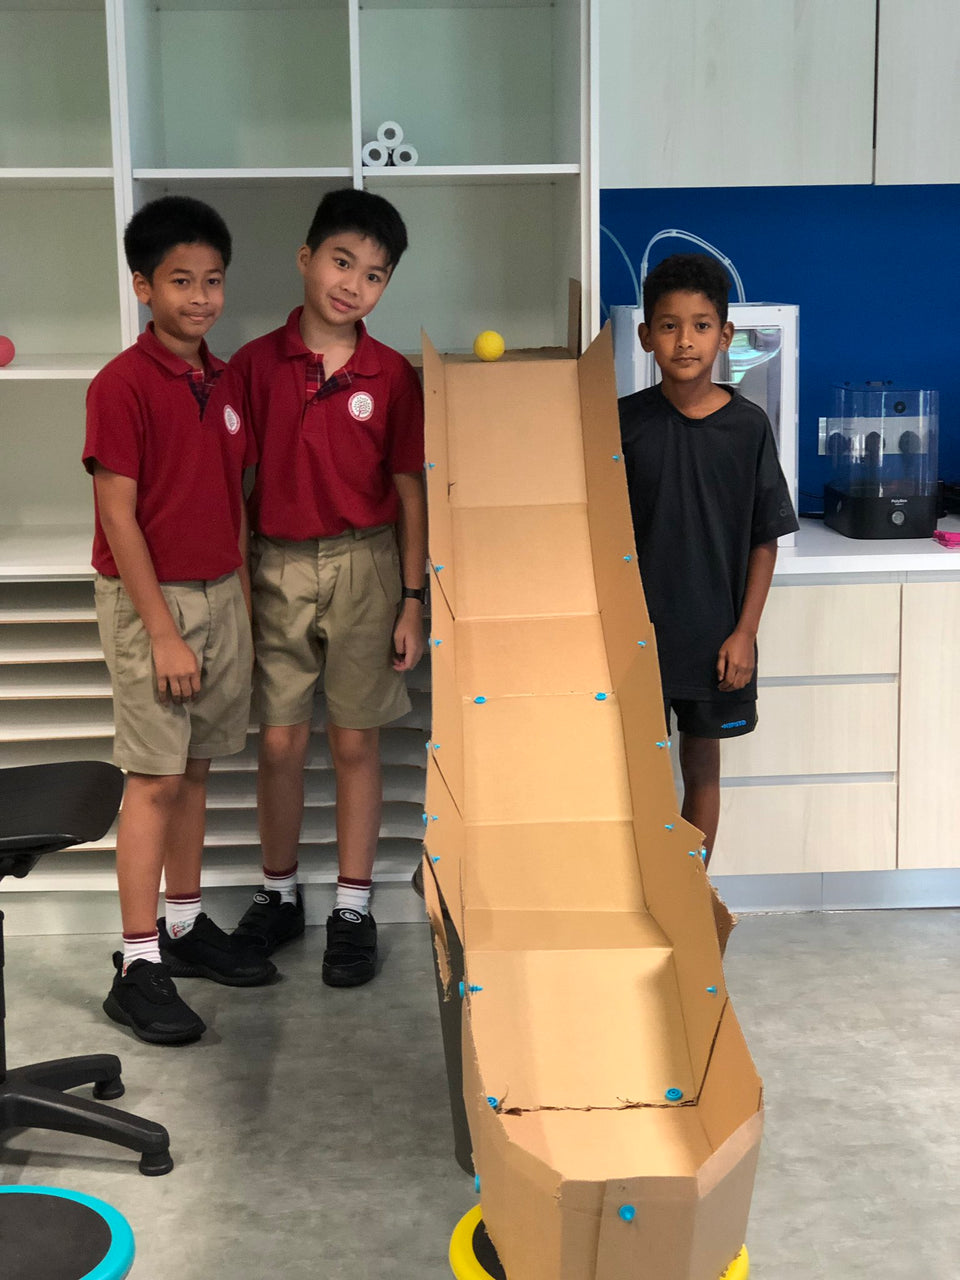 Cardboard ramps for Dash robots made using cardboard and Makedo construction system.